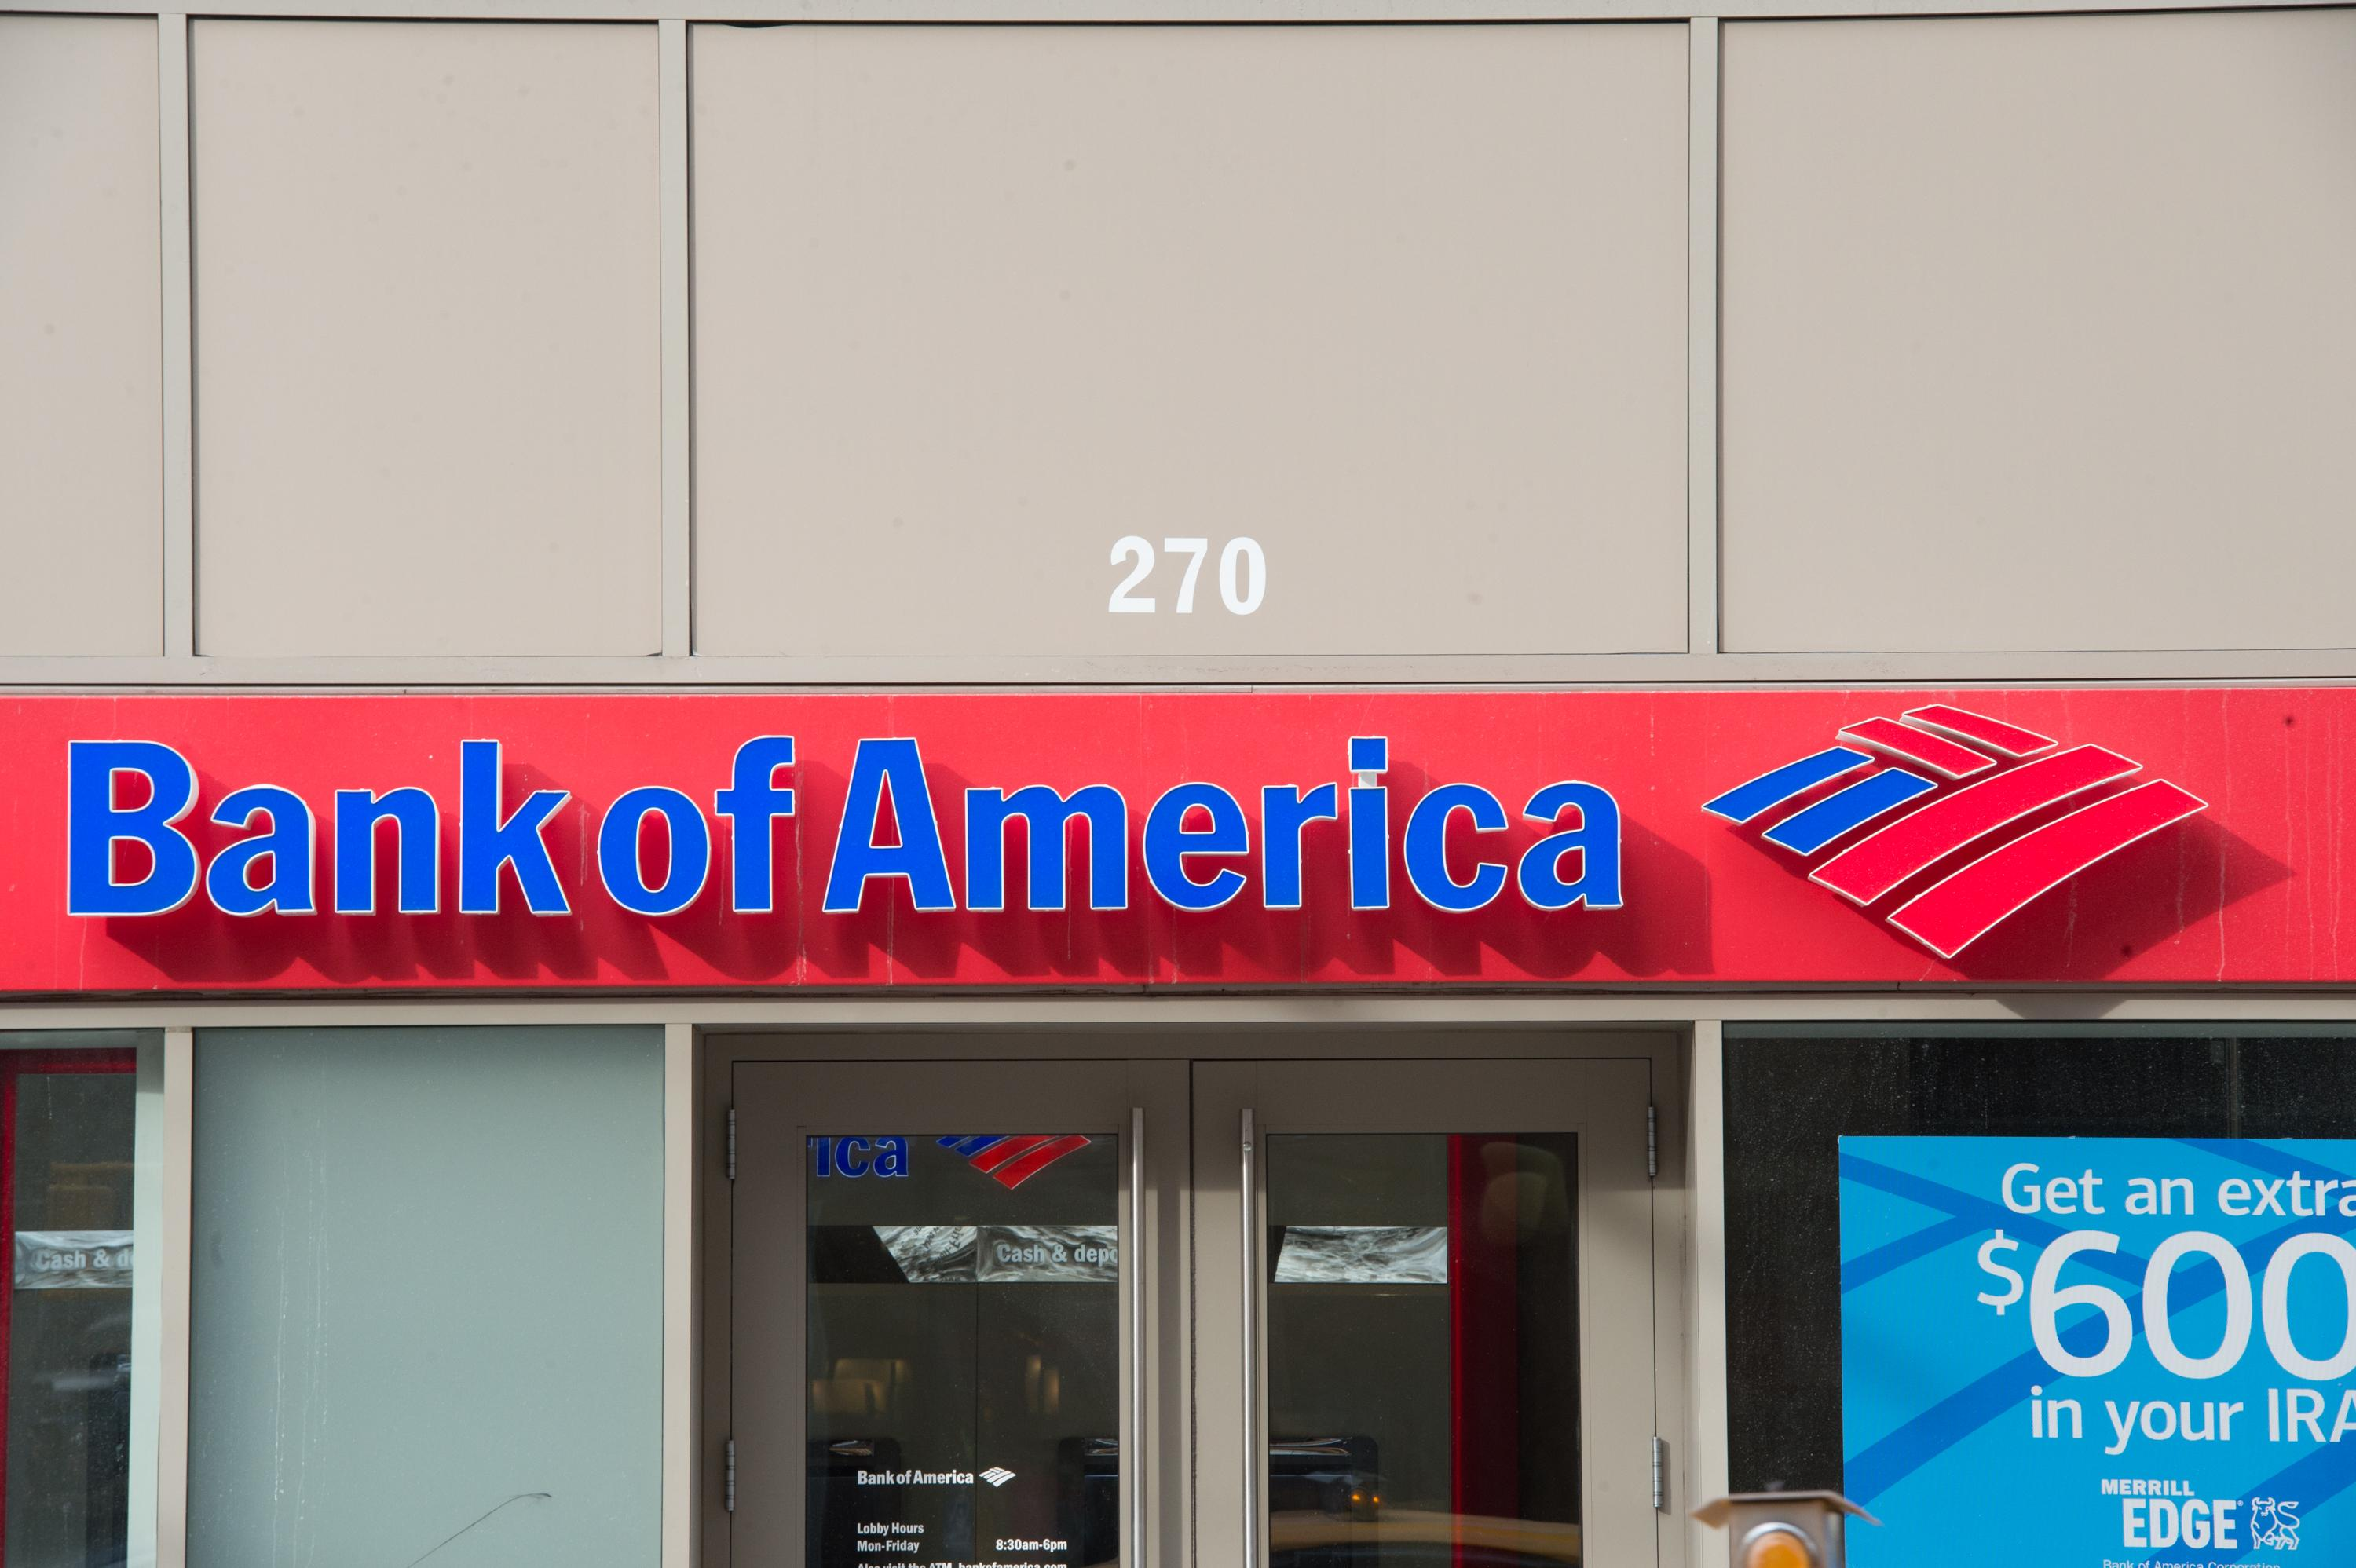 Bank of America wants to talk to its customers who make guns